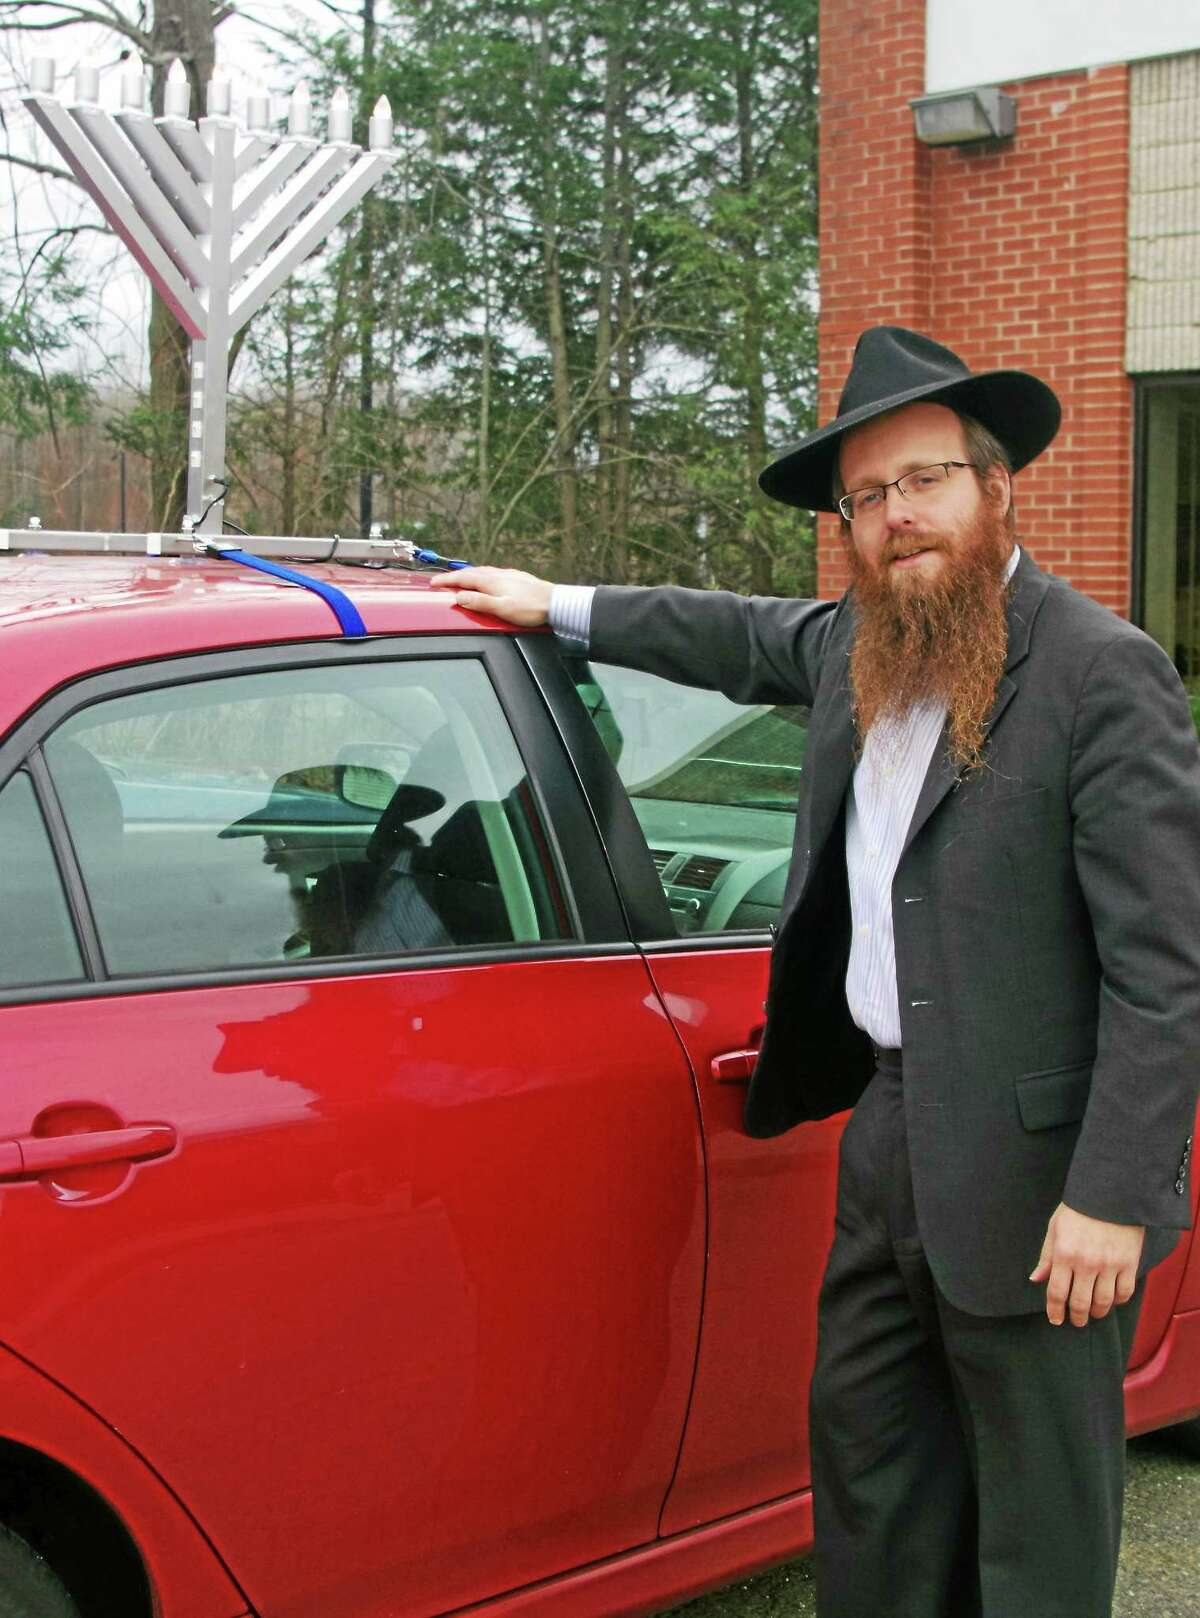 Rabbi Yosef Wolvovsky of the Benet Rothstein Chabad Jewish Center poses with the Menorah-mounted car he plans to ride in the upcoming parade on Monday.